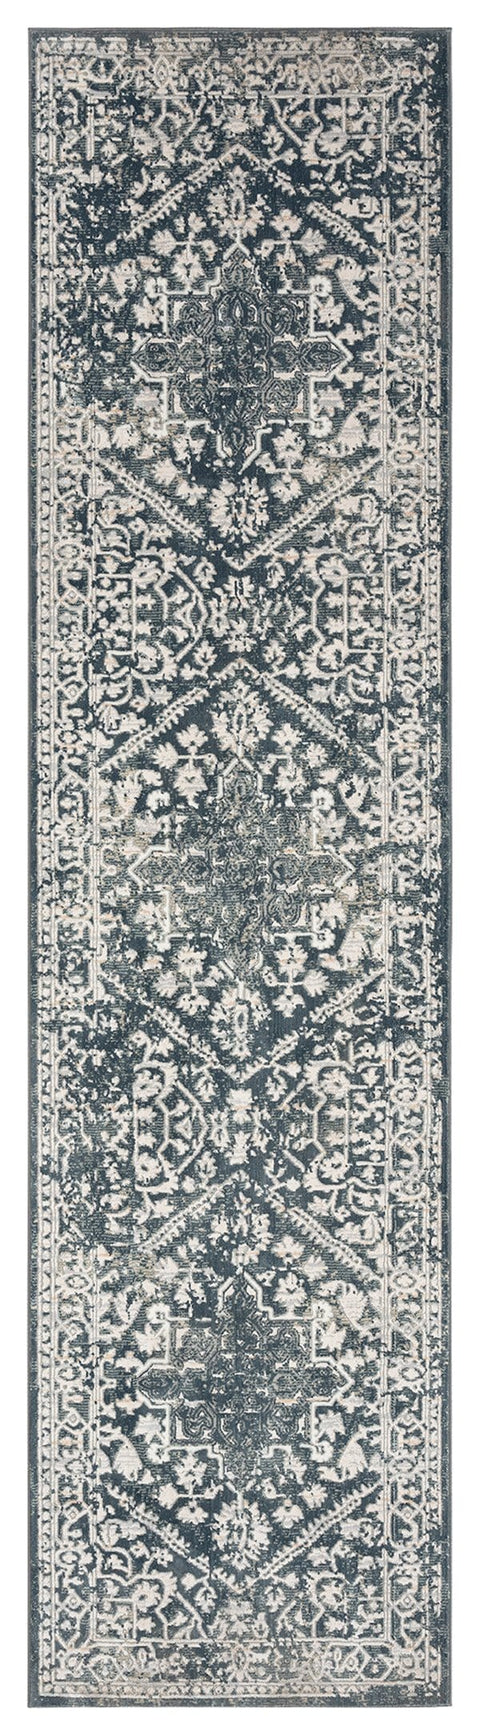 Fahri Charcoal Grey and Ivory Traditional Distressed Runner Rug